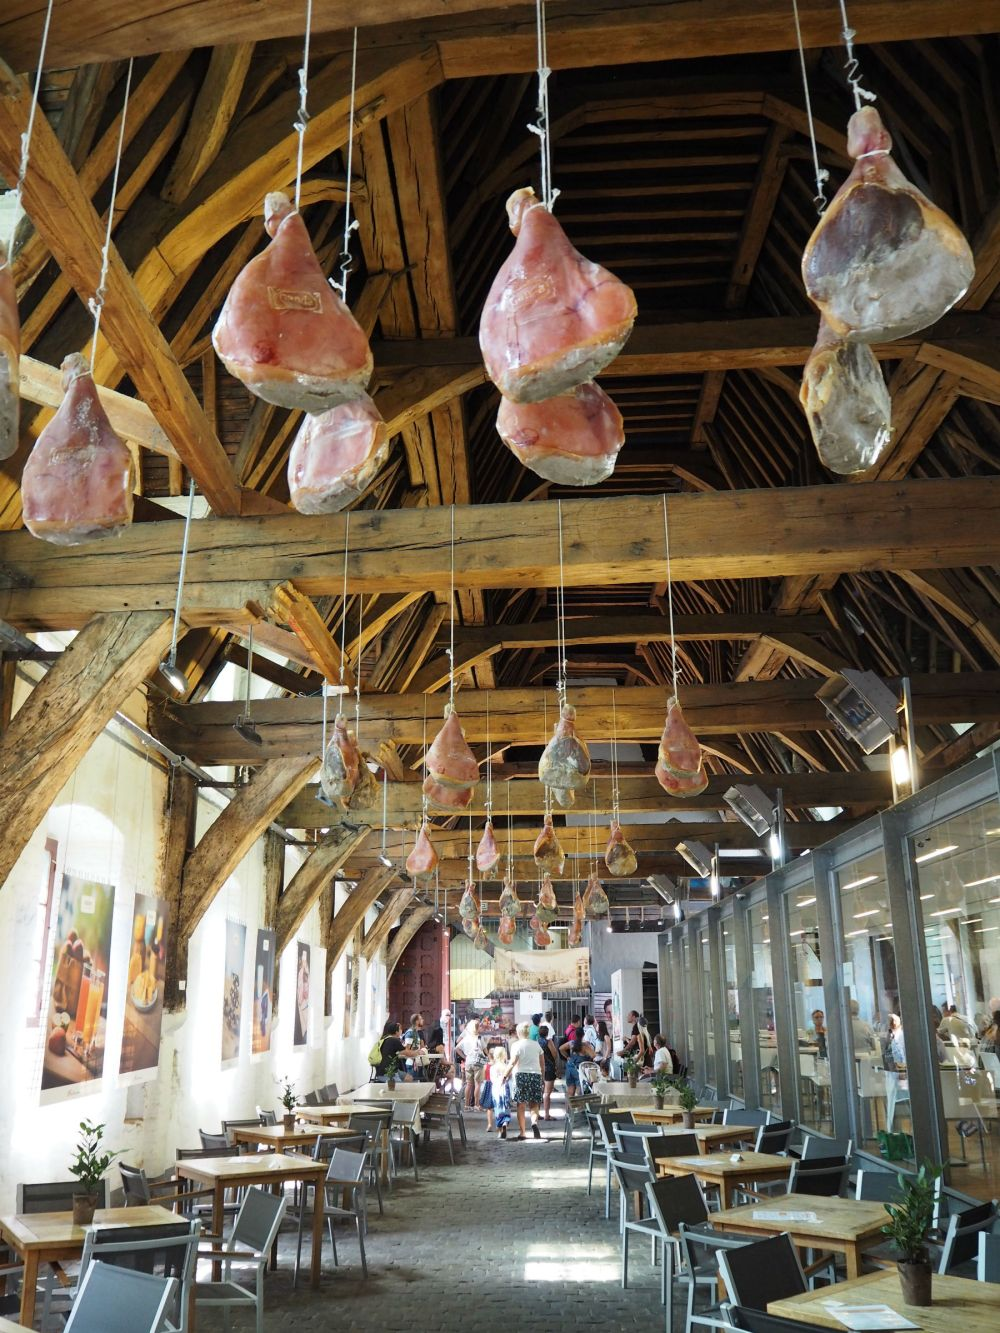 the Great Butcher's Hall in Ghent